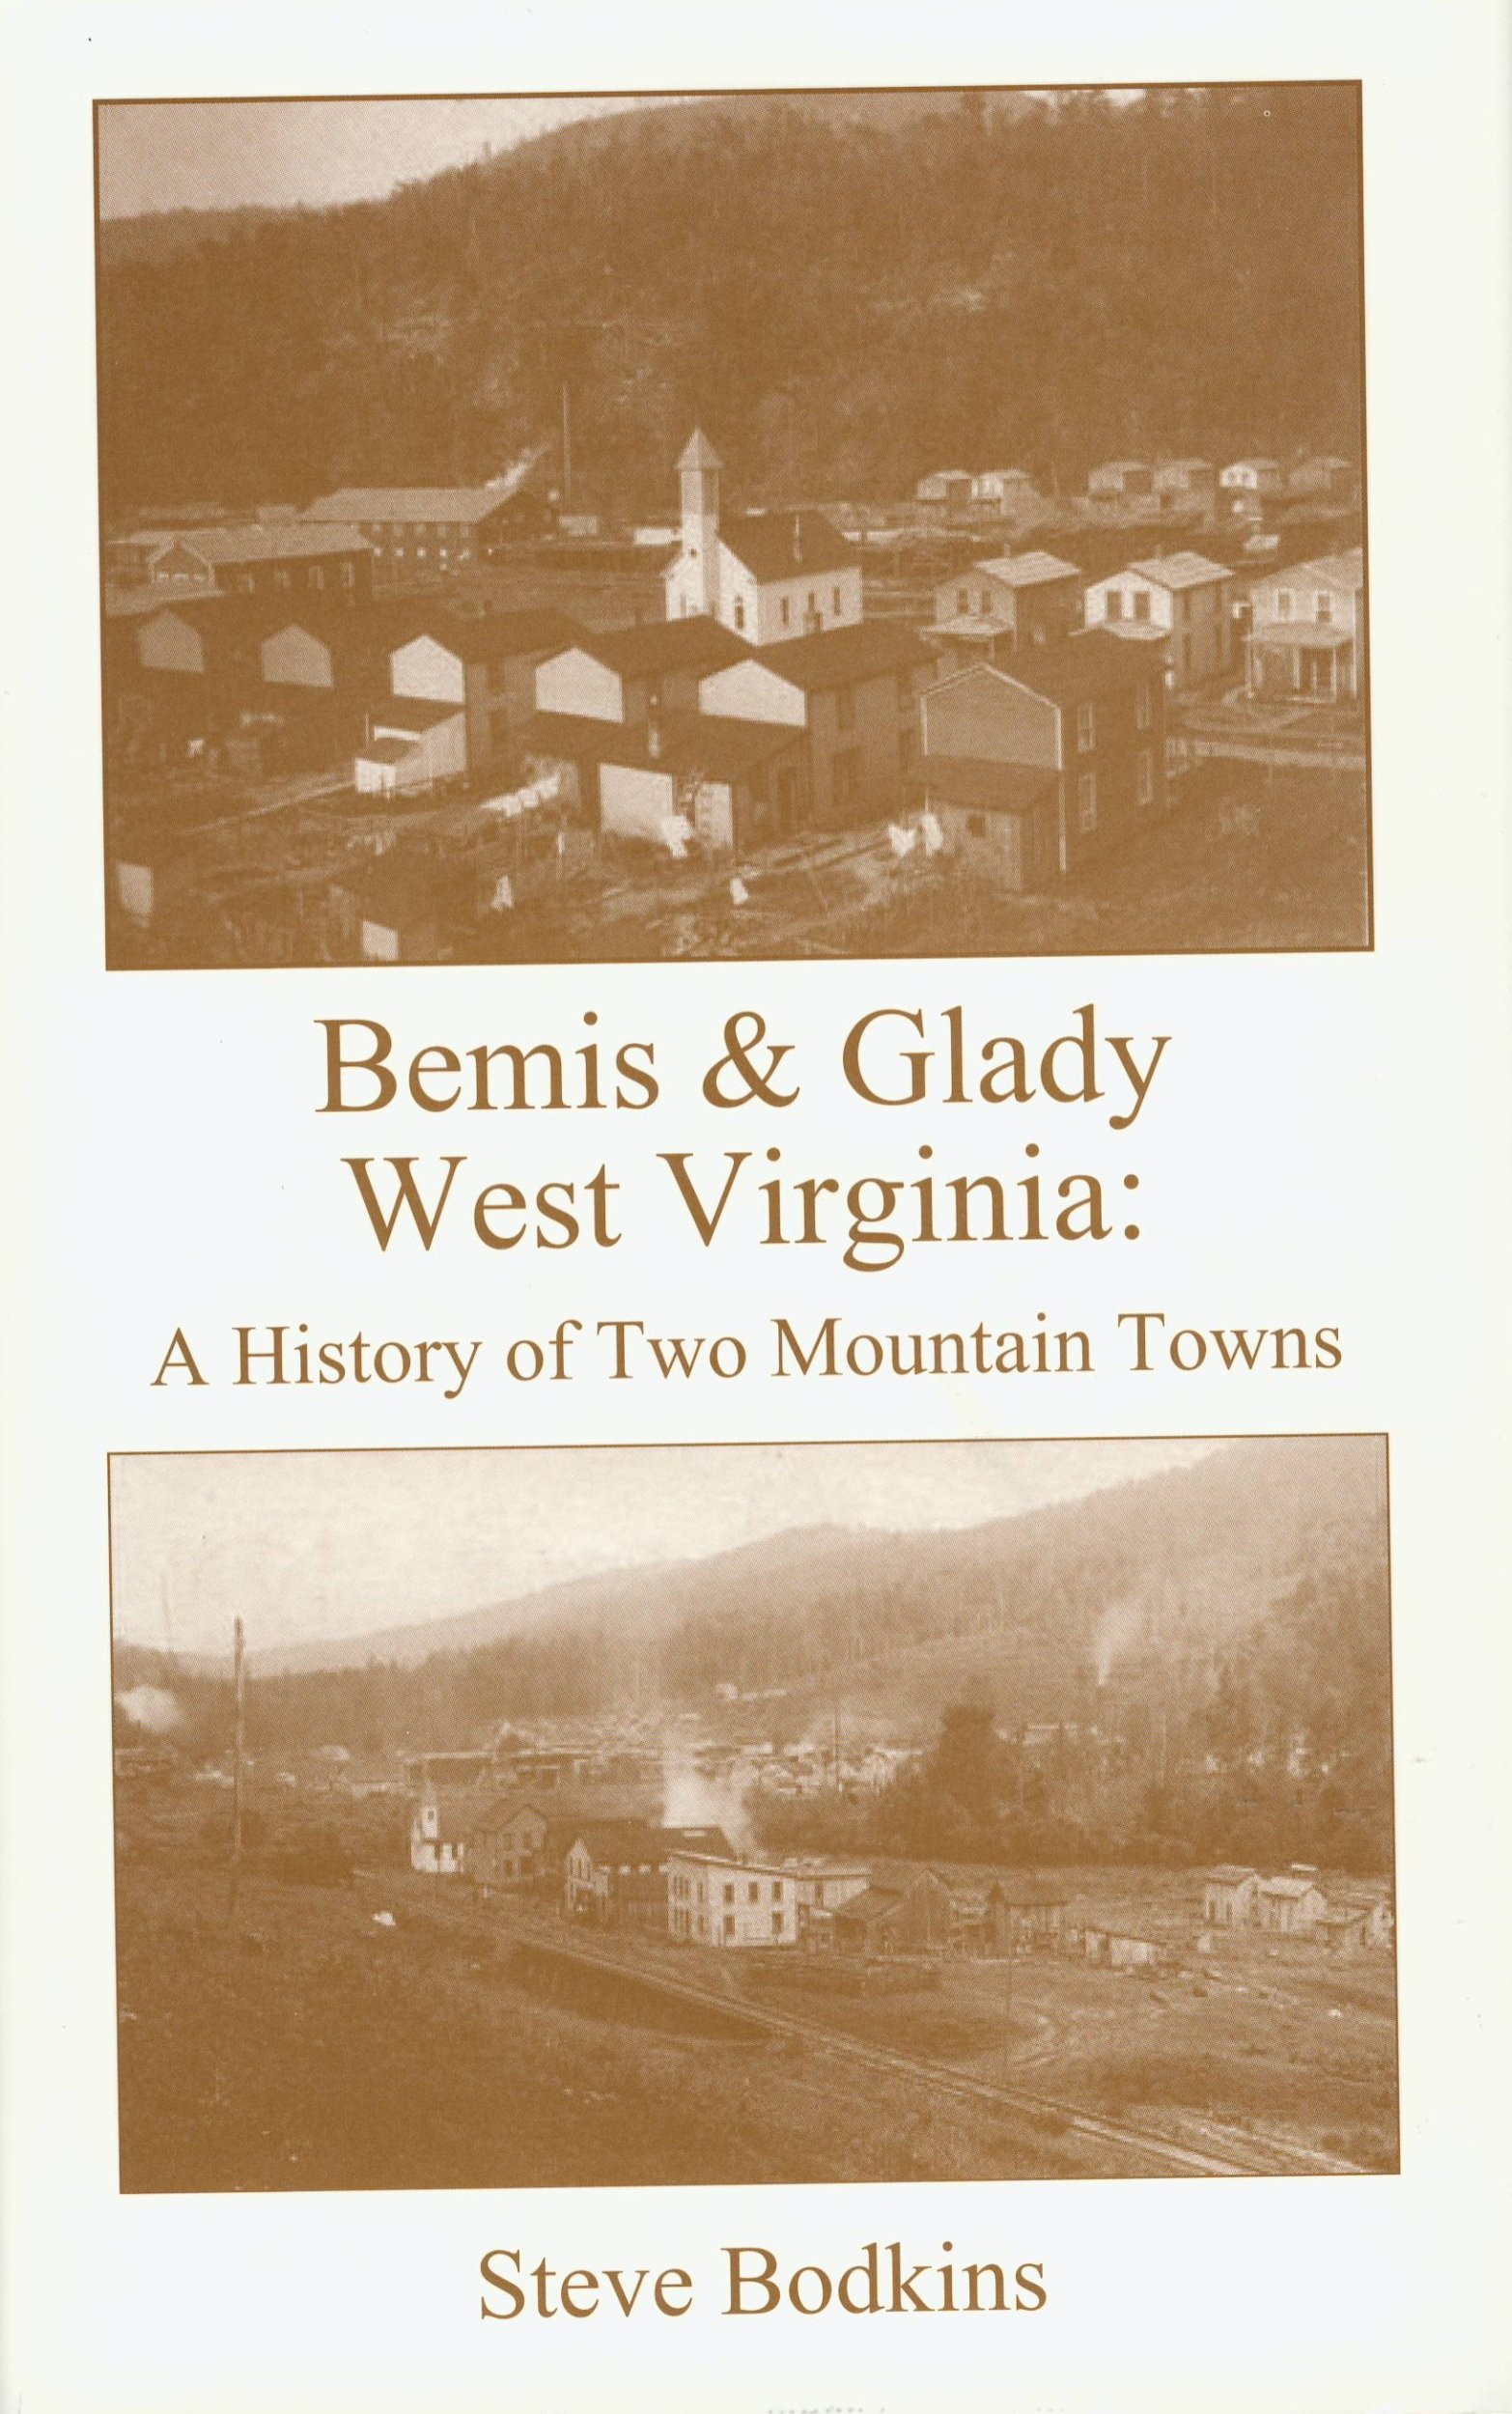 Bemis & Glady West Virginia: A History of Two Mountain Towns pdf